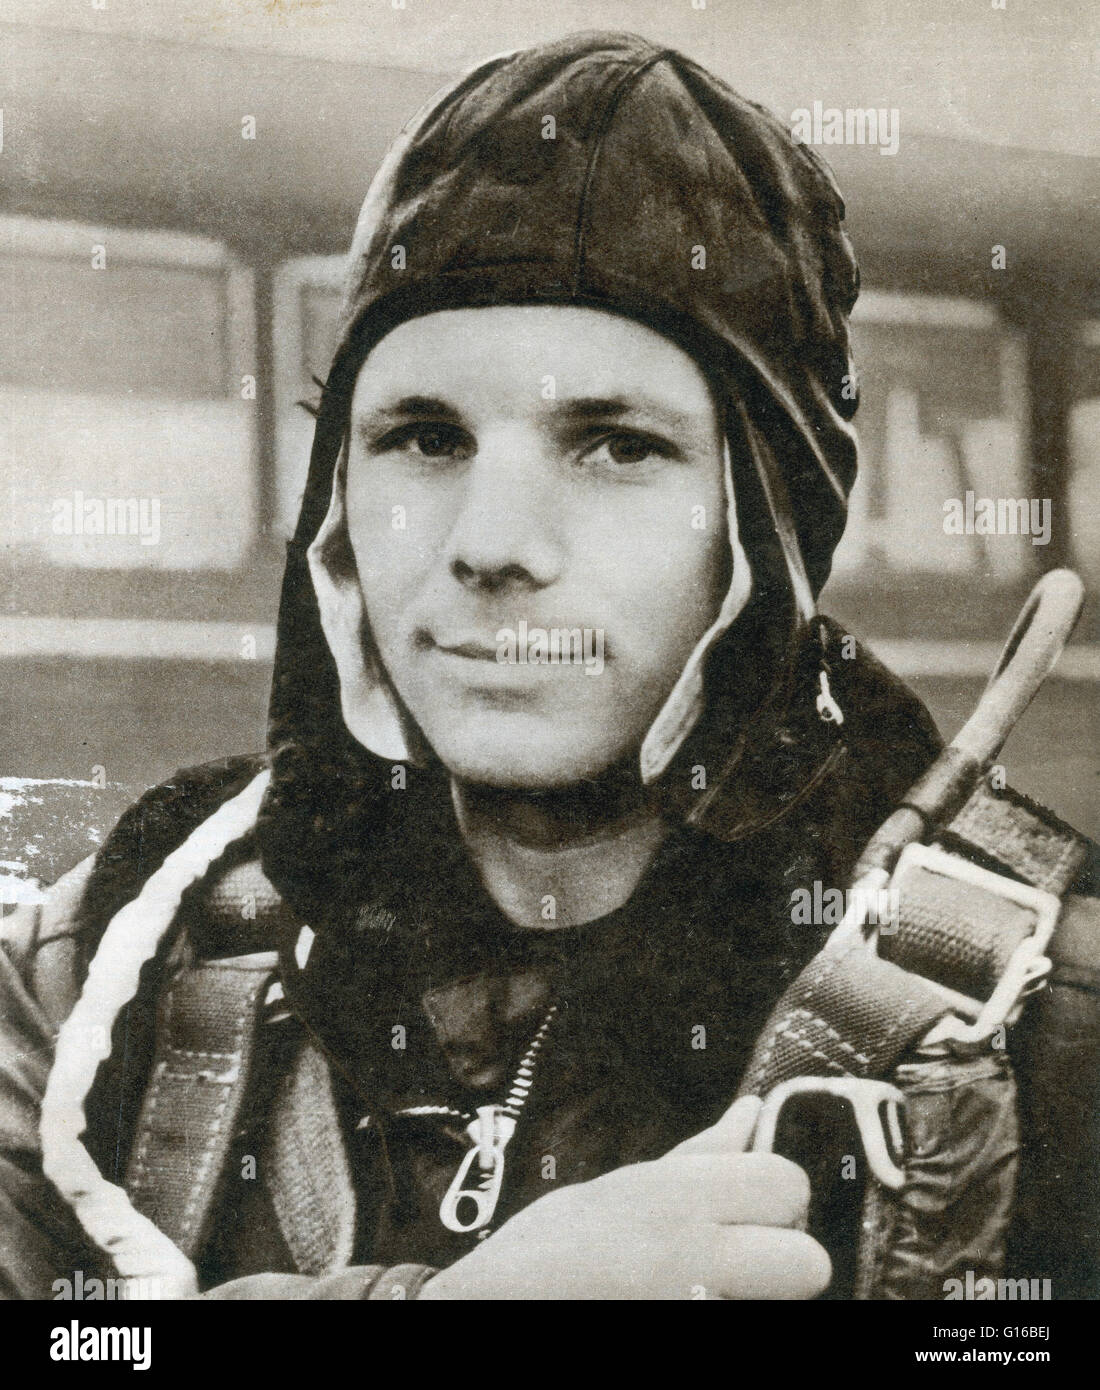 yuri alekseyevich gagarin was a stock photo yuri alekseyevich gagarin 9 1934 27 1968 was a soviet pilot and cosmonaut after graduating from a technical school in 1955